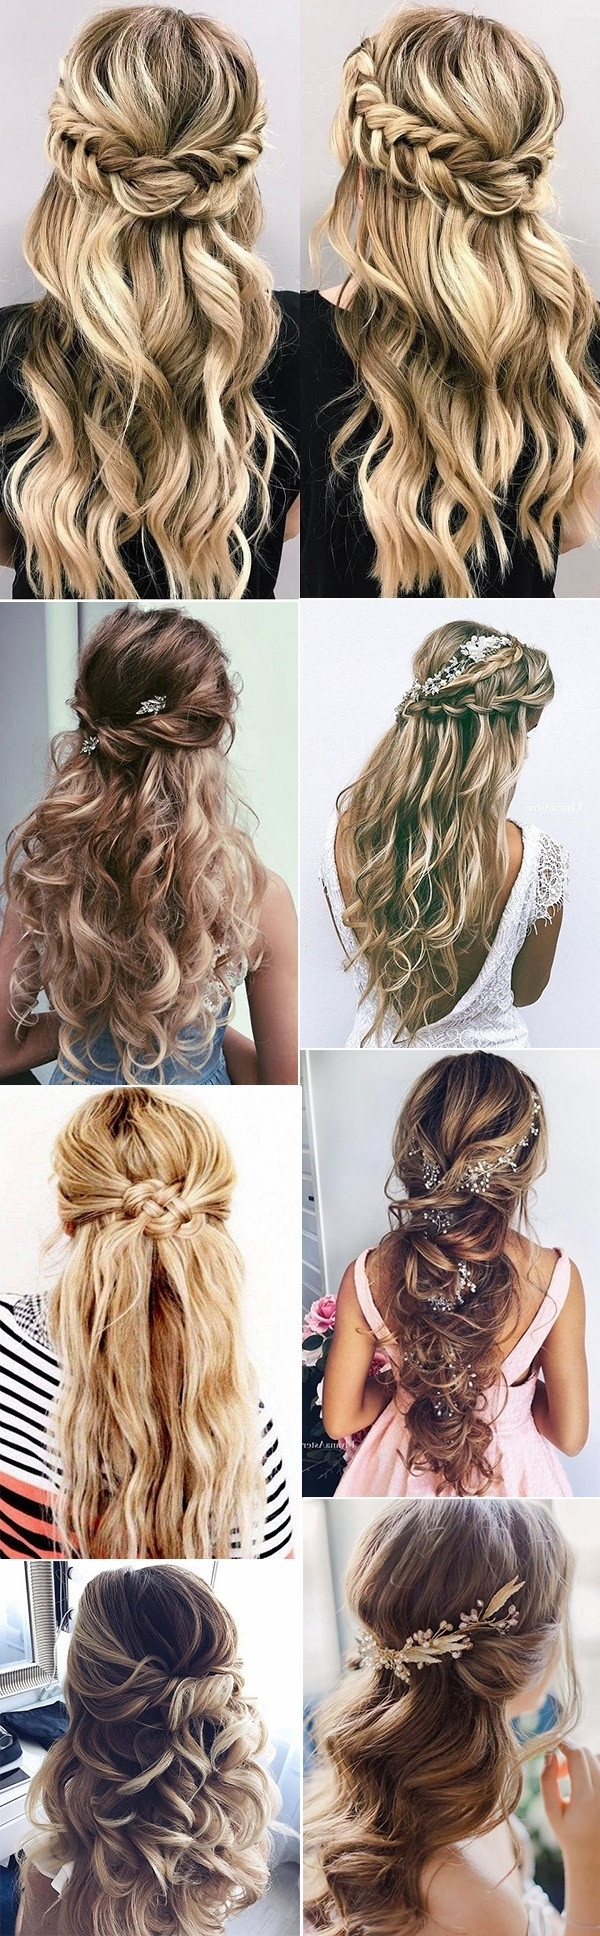 Favorite Down Long Hair Wedding Hairstyles For 15 Chic Half Up Half Down Wedding Hairstyles For Long Hair (View 6 of 15)